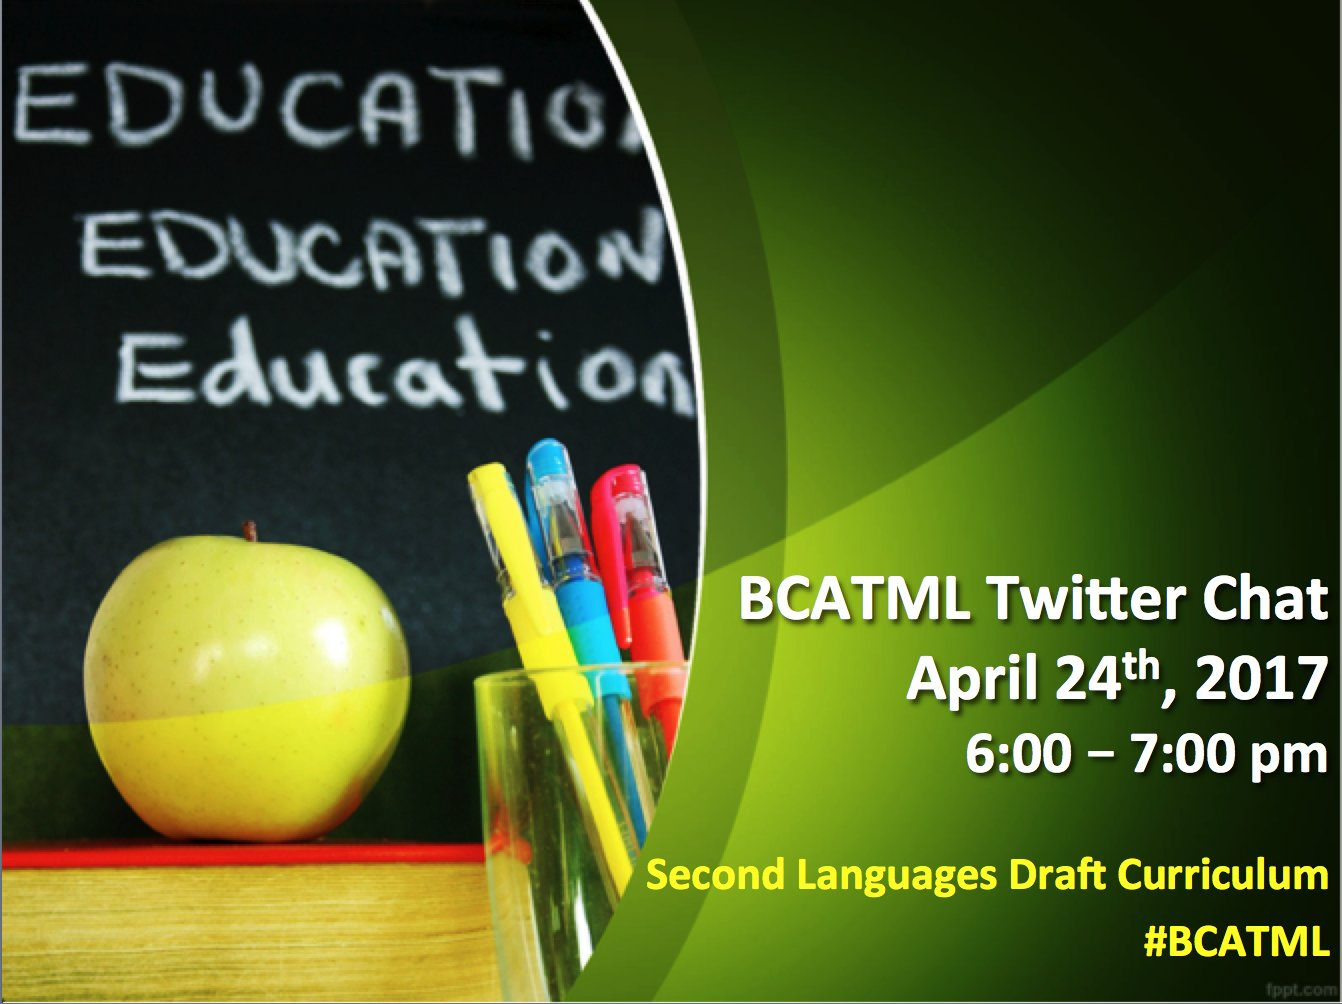 Reminder of #BCATML's Twitter chat Re: Second Languages draft curricula Mon. April 24 starting at 6 pm. .@bclca .@bctf #langchat #bcedchat https://t.co/sRnV2YjSHd